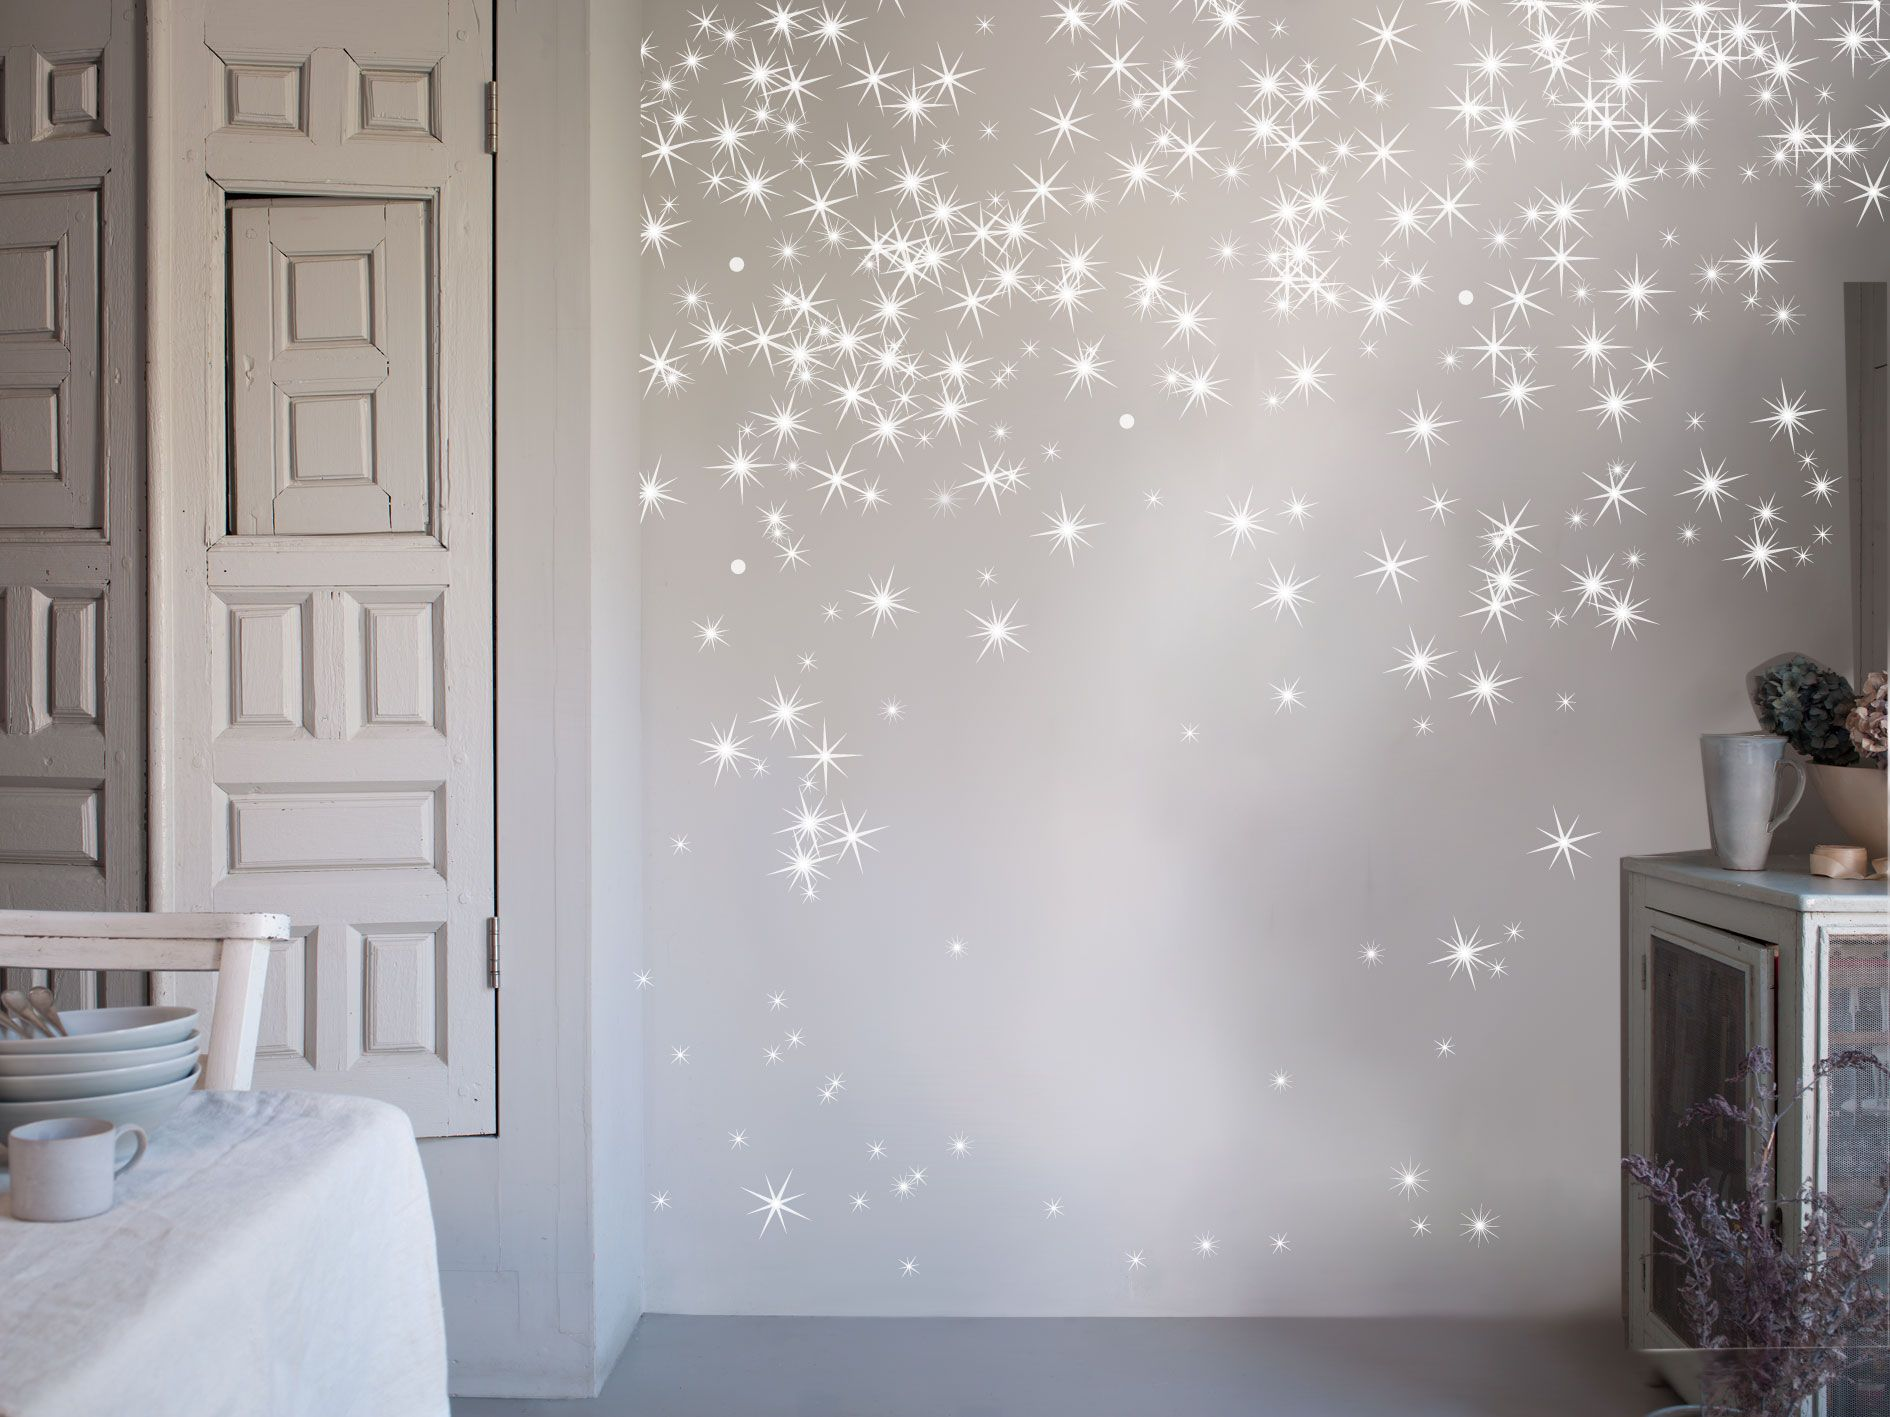 Star Wall Decor Ideas: Beautiful Star Decals That Aren't The Typical Star Shape